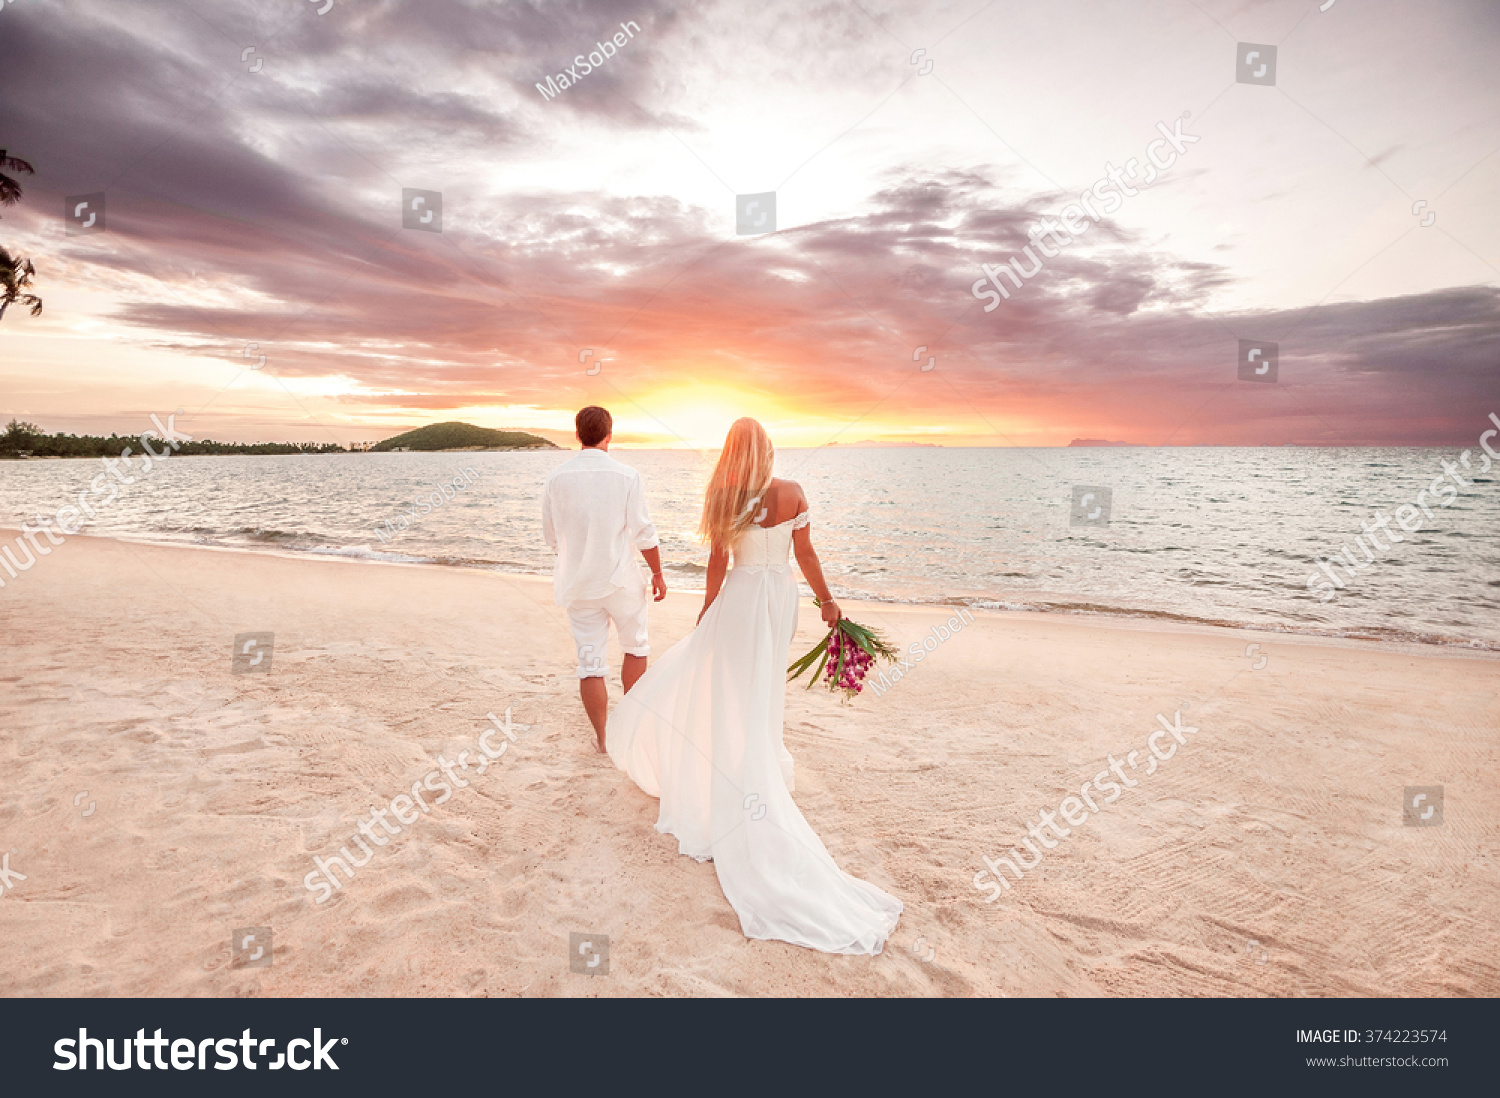 beautiful couple sunset near oceanhoneymoon romantic stock photo 374223574 shutterstock. Black Bedroom Furniture Sets. Home Design Ideas